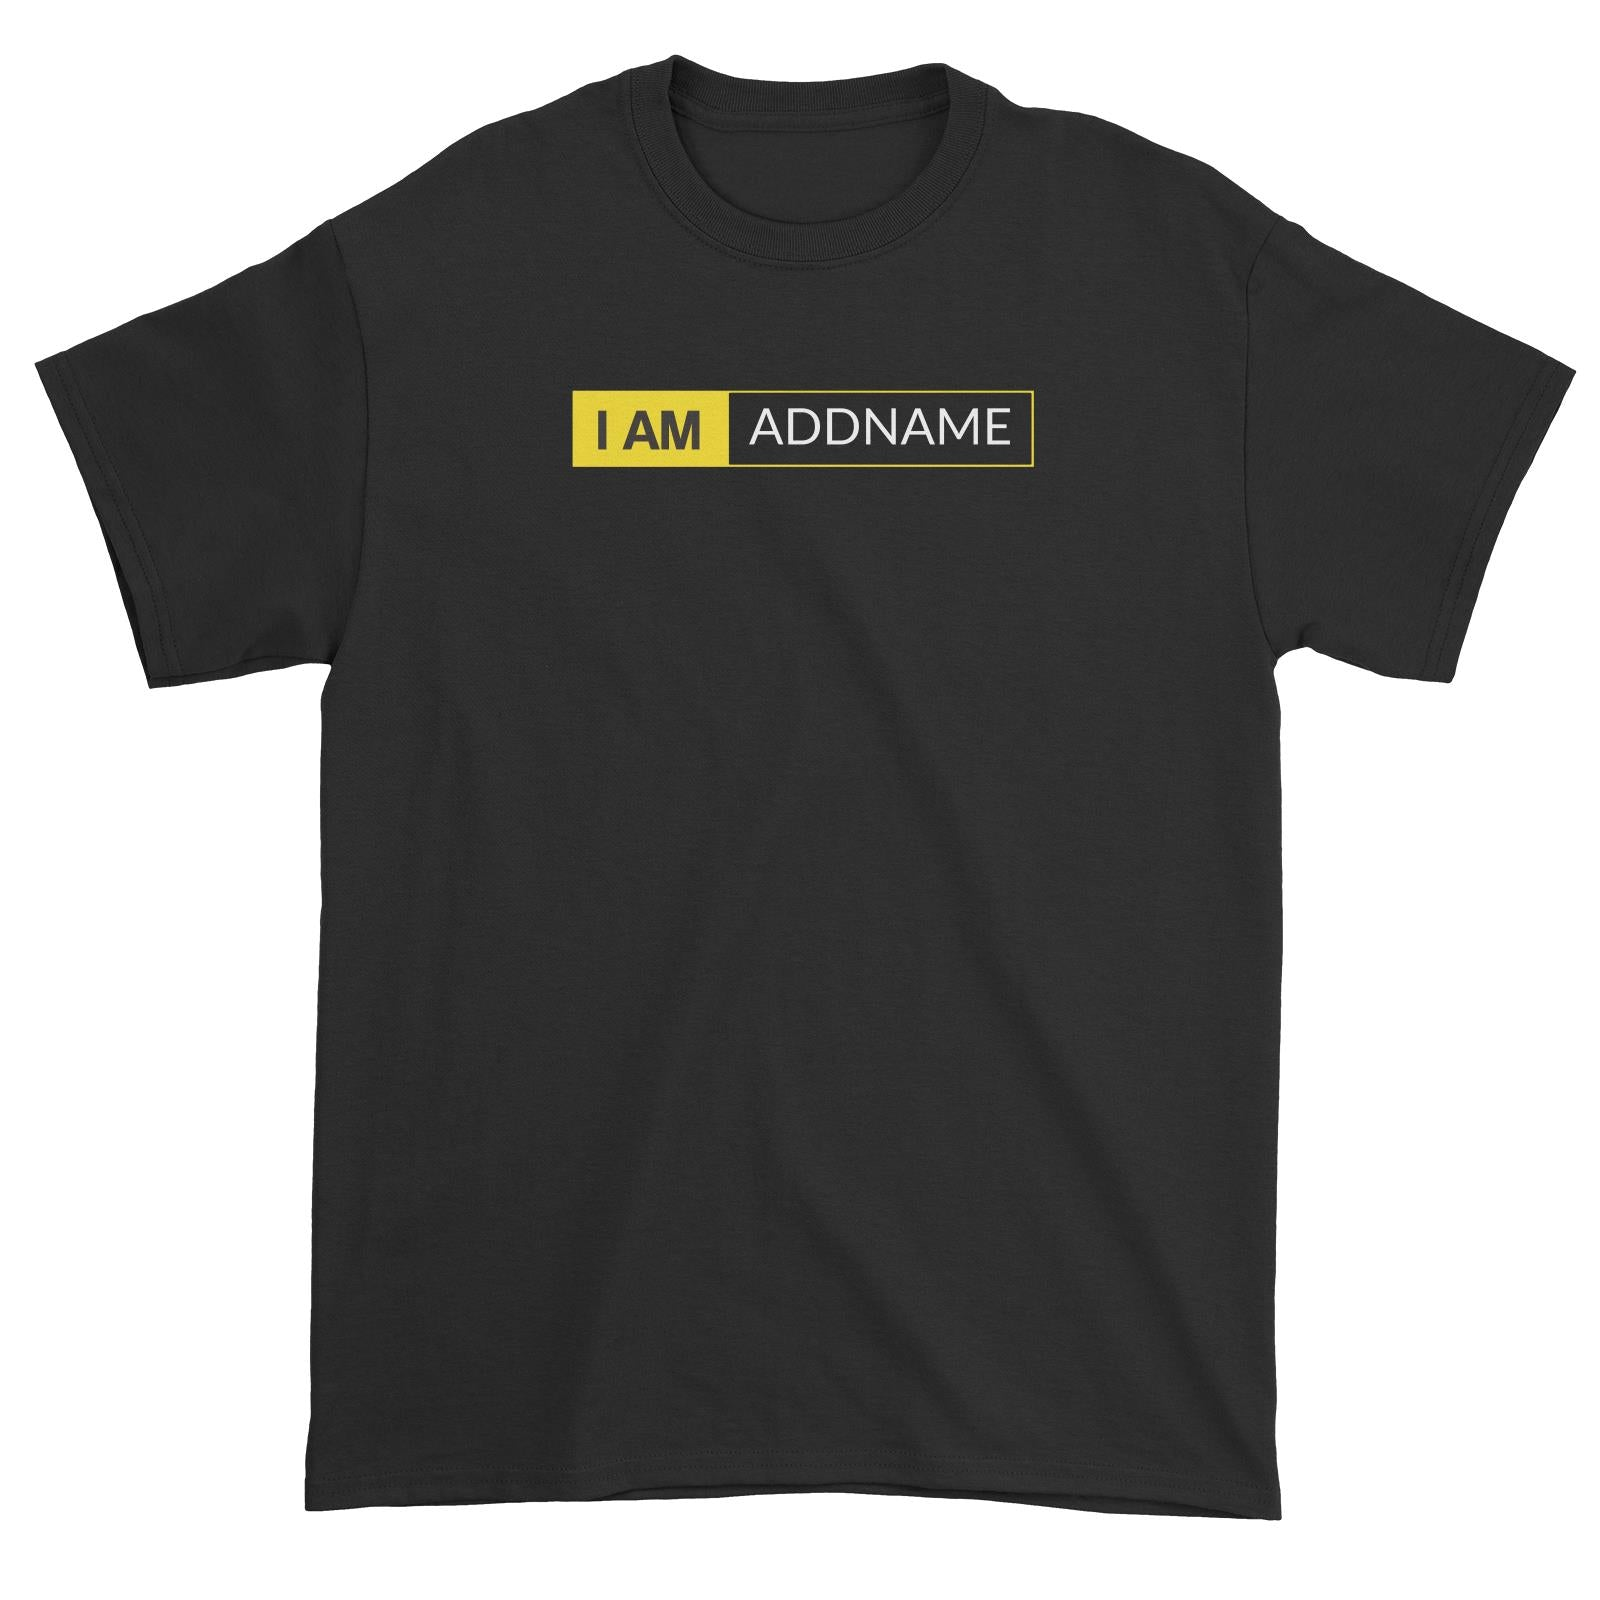 I AM Addname in Yellow Box Unisex T-Shirt Basic Nikon Matching Family Personalizable Designs